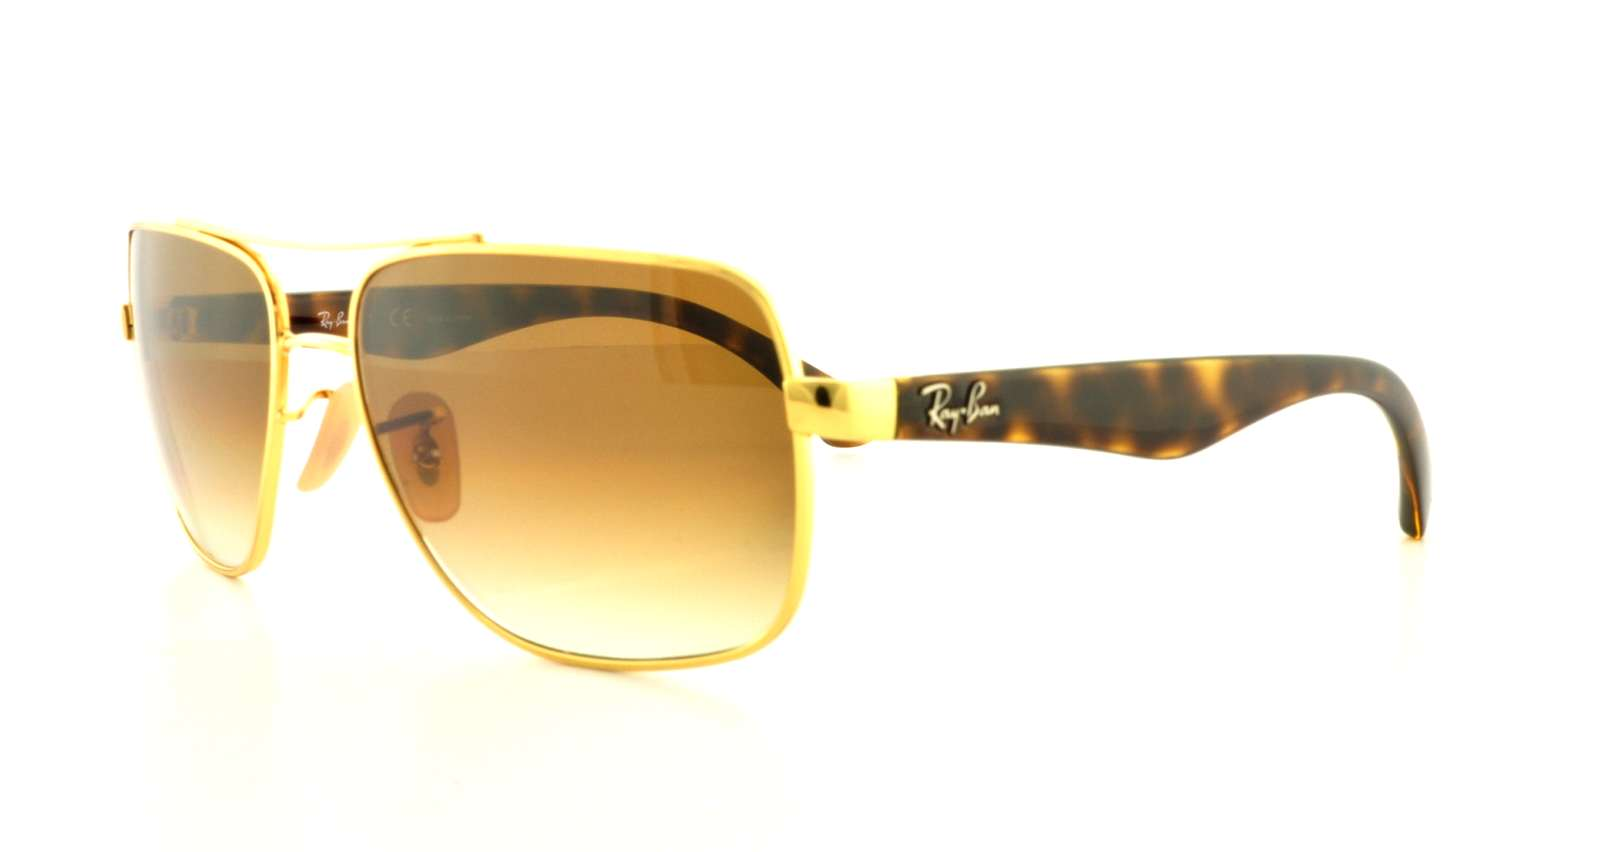 f4c489b9774 Ray Ban Rb3025 86 127 « One More Soul